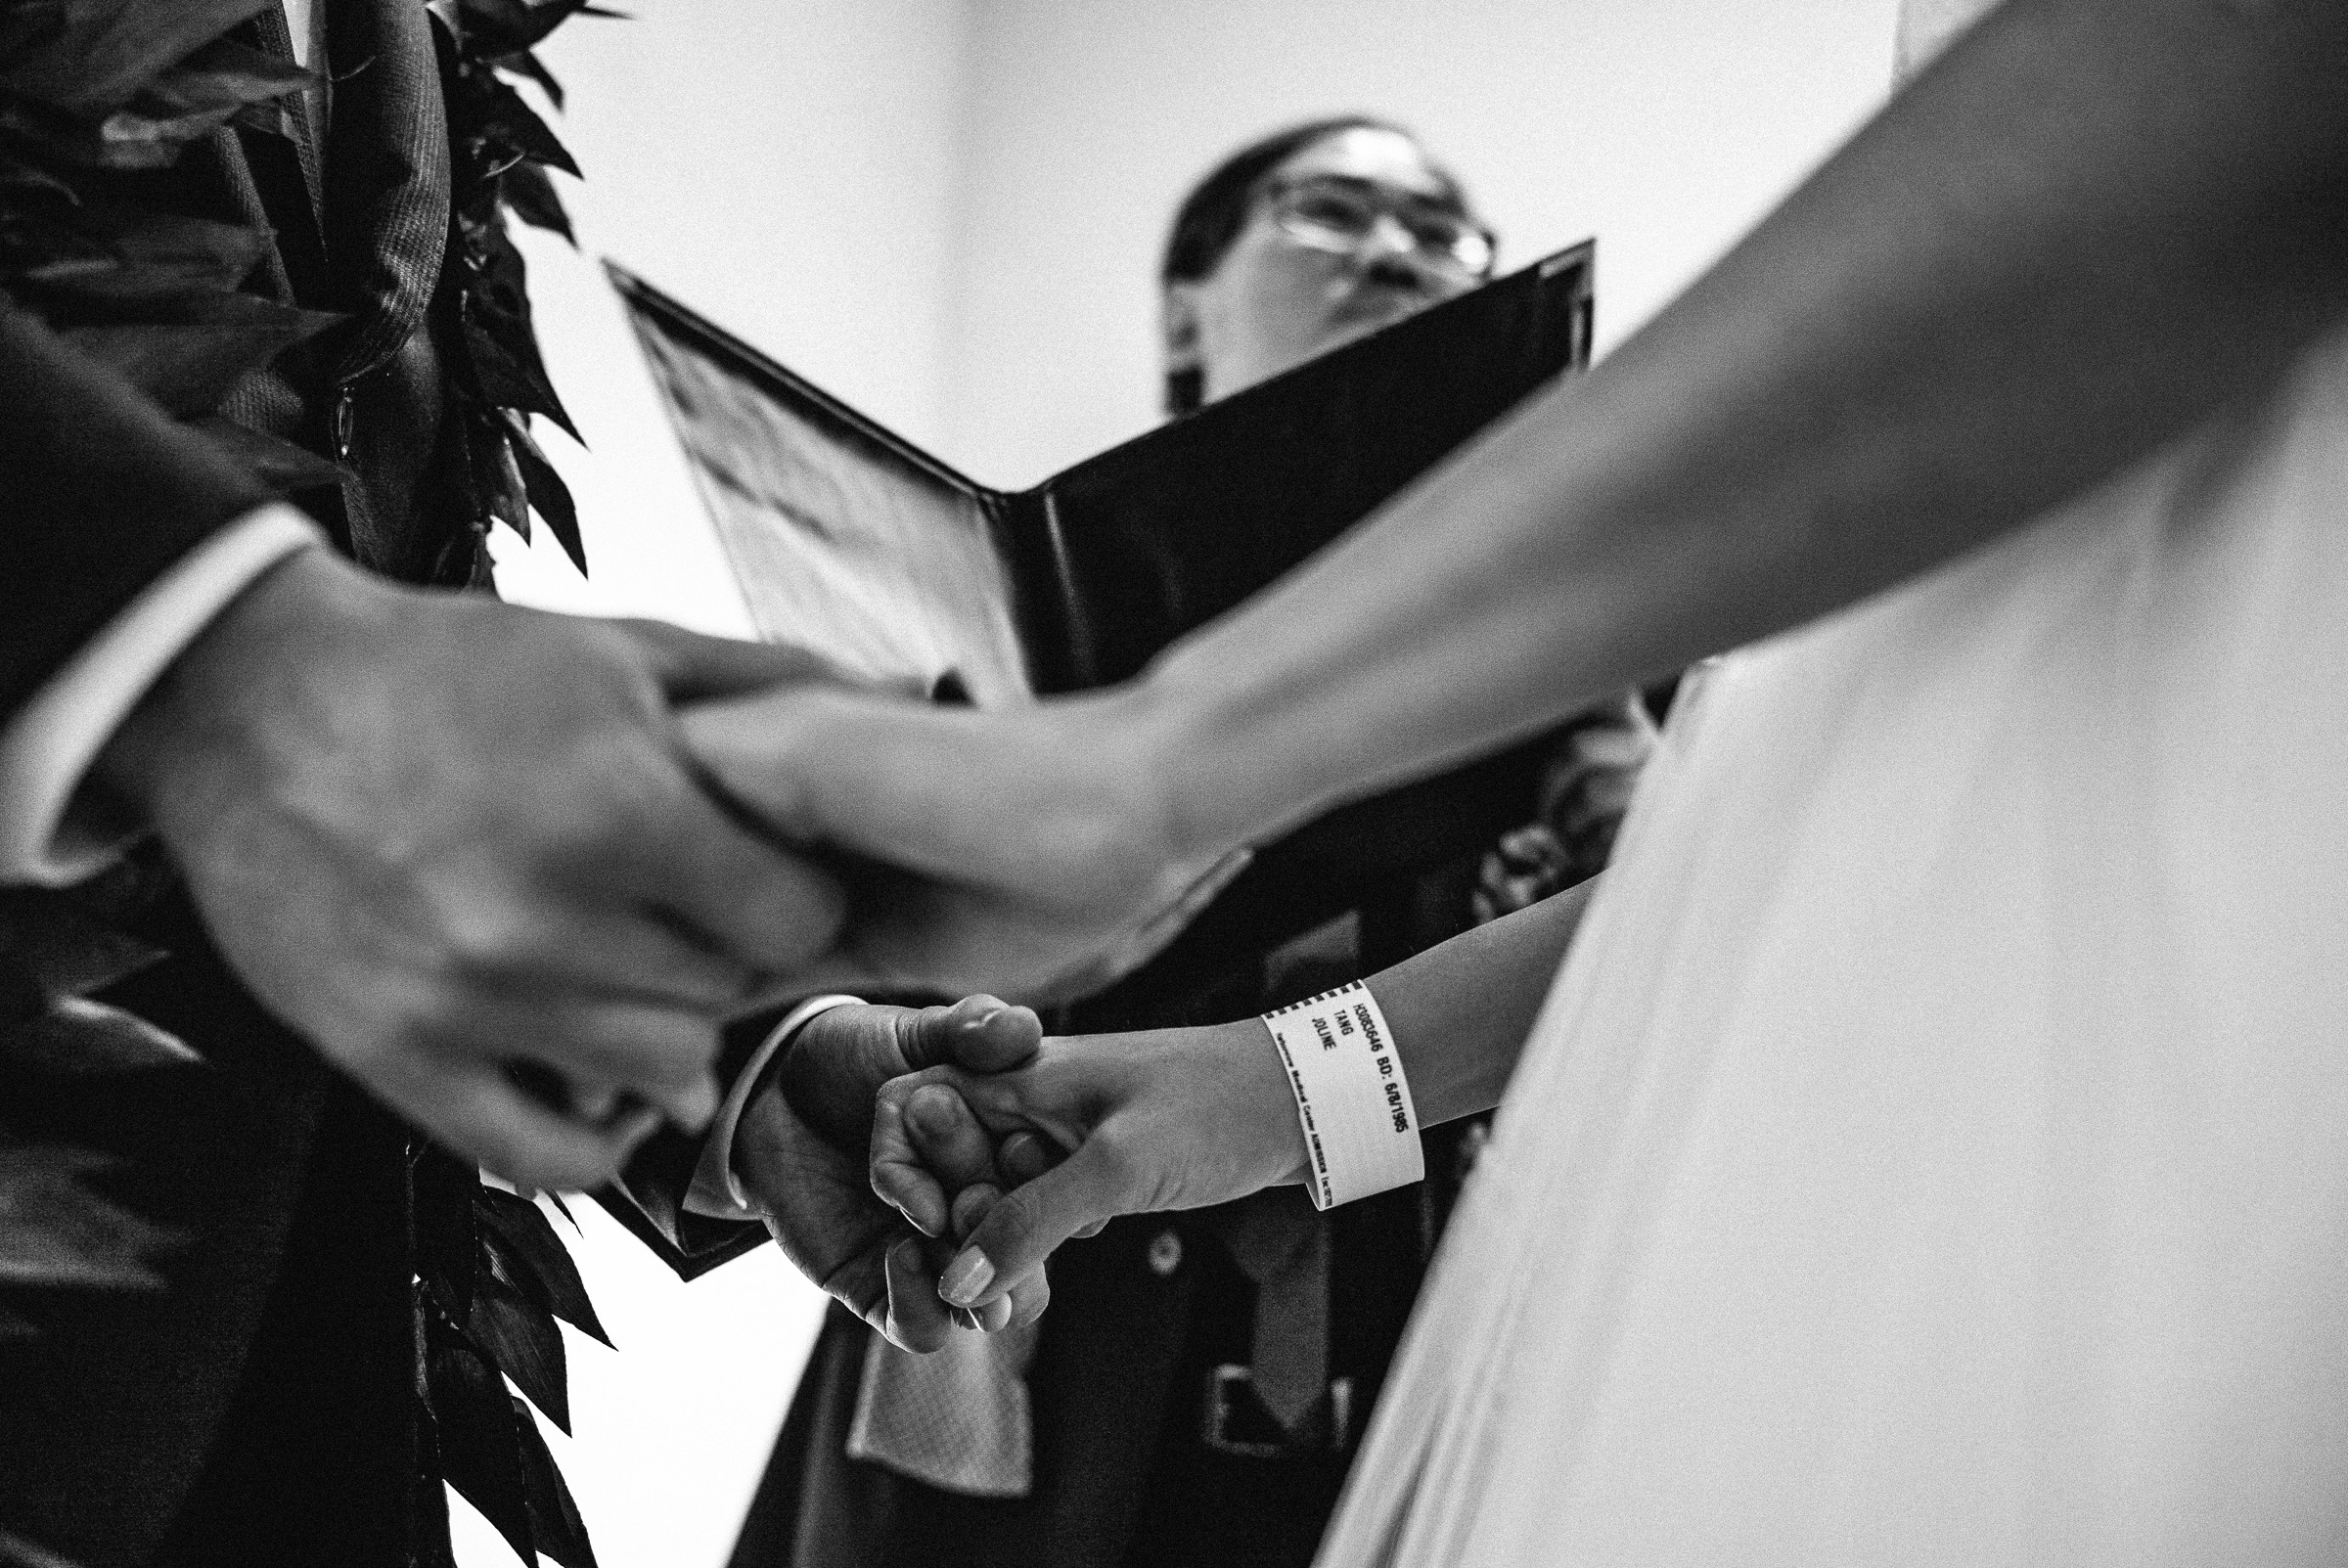 Bride and Groom Holding Hands during Wedding Ceremony in Pioneer Square